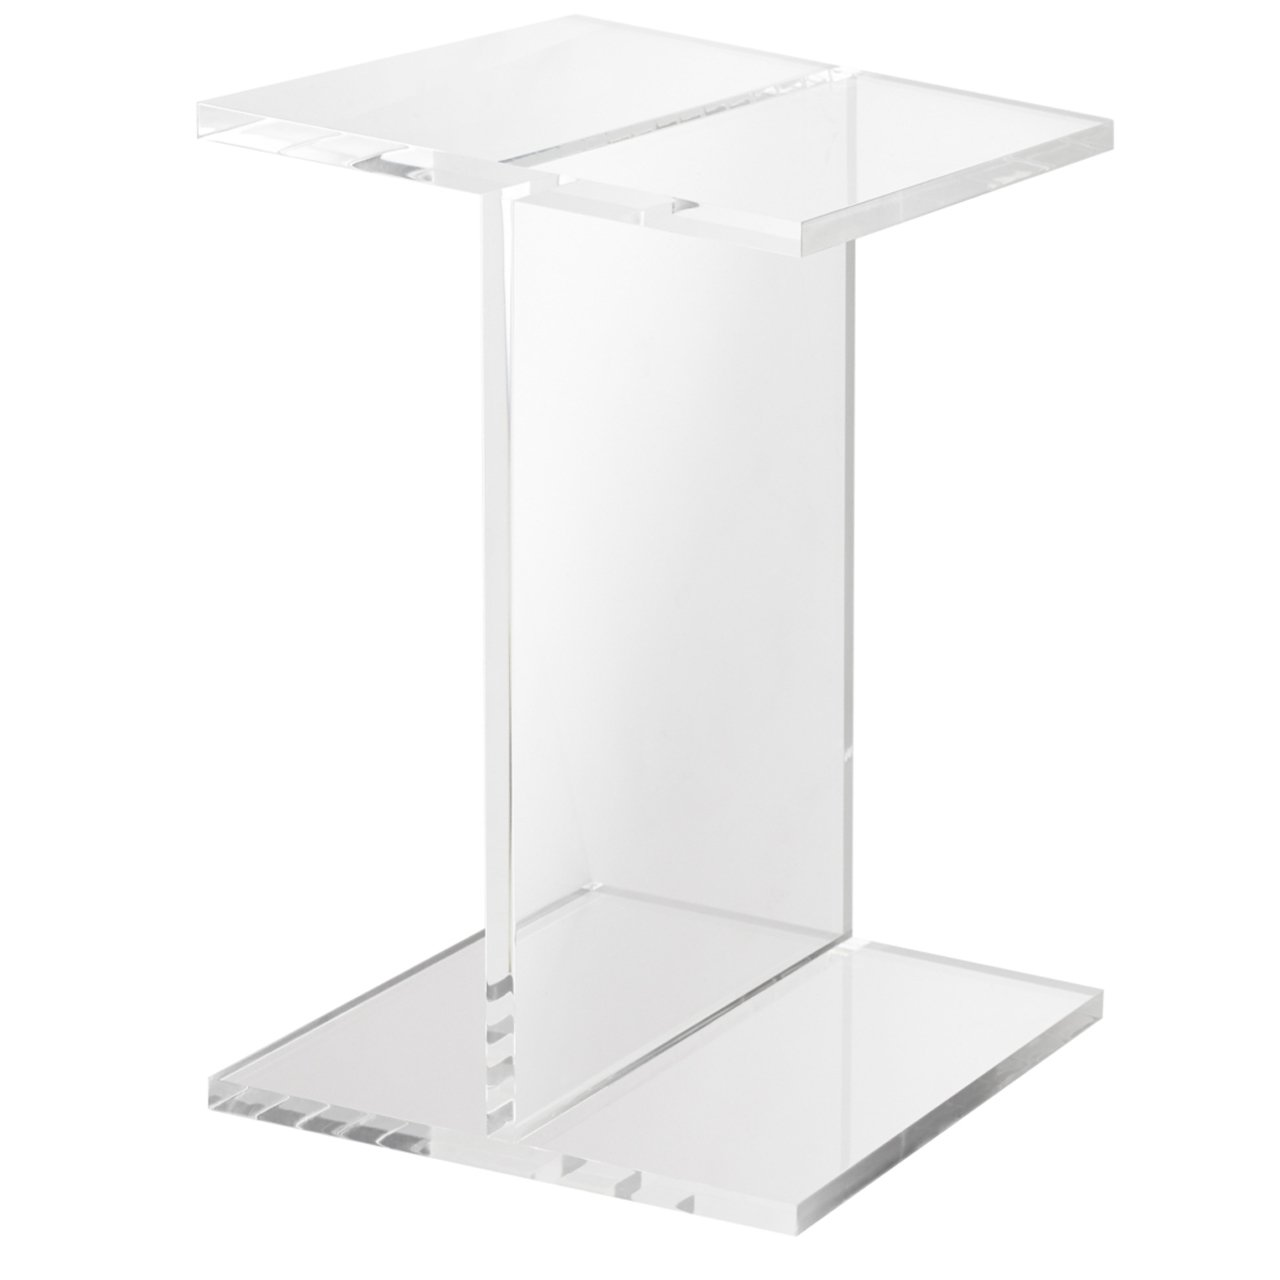 clear acrylic accent table free shipping today west elm paint colors set bedside tables cordless touch lamp rope inch tablecloth fire small solid wood coffee designer sofa allen